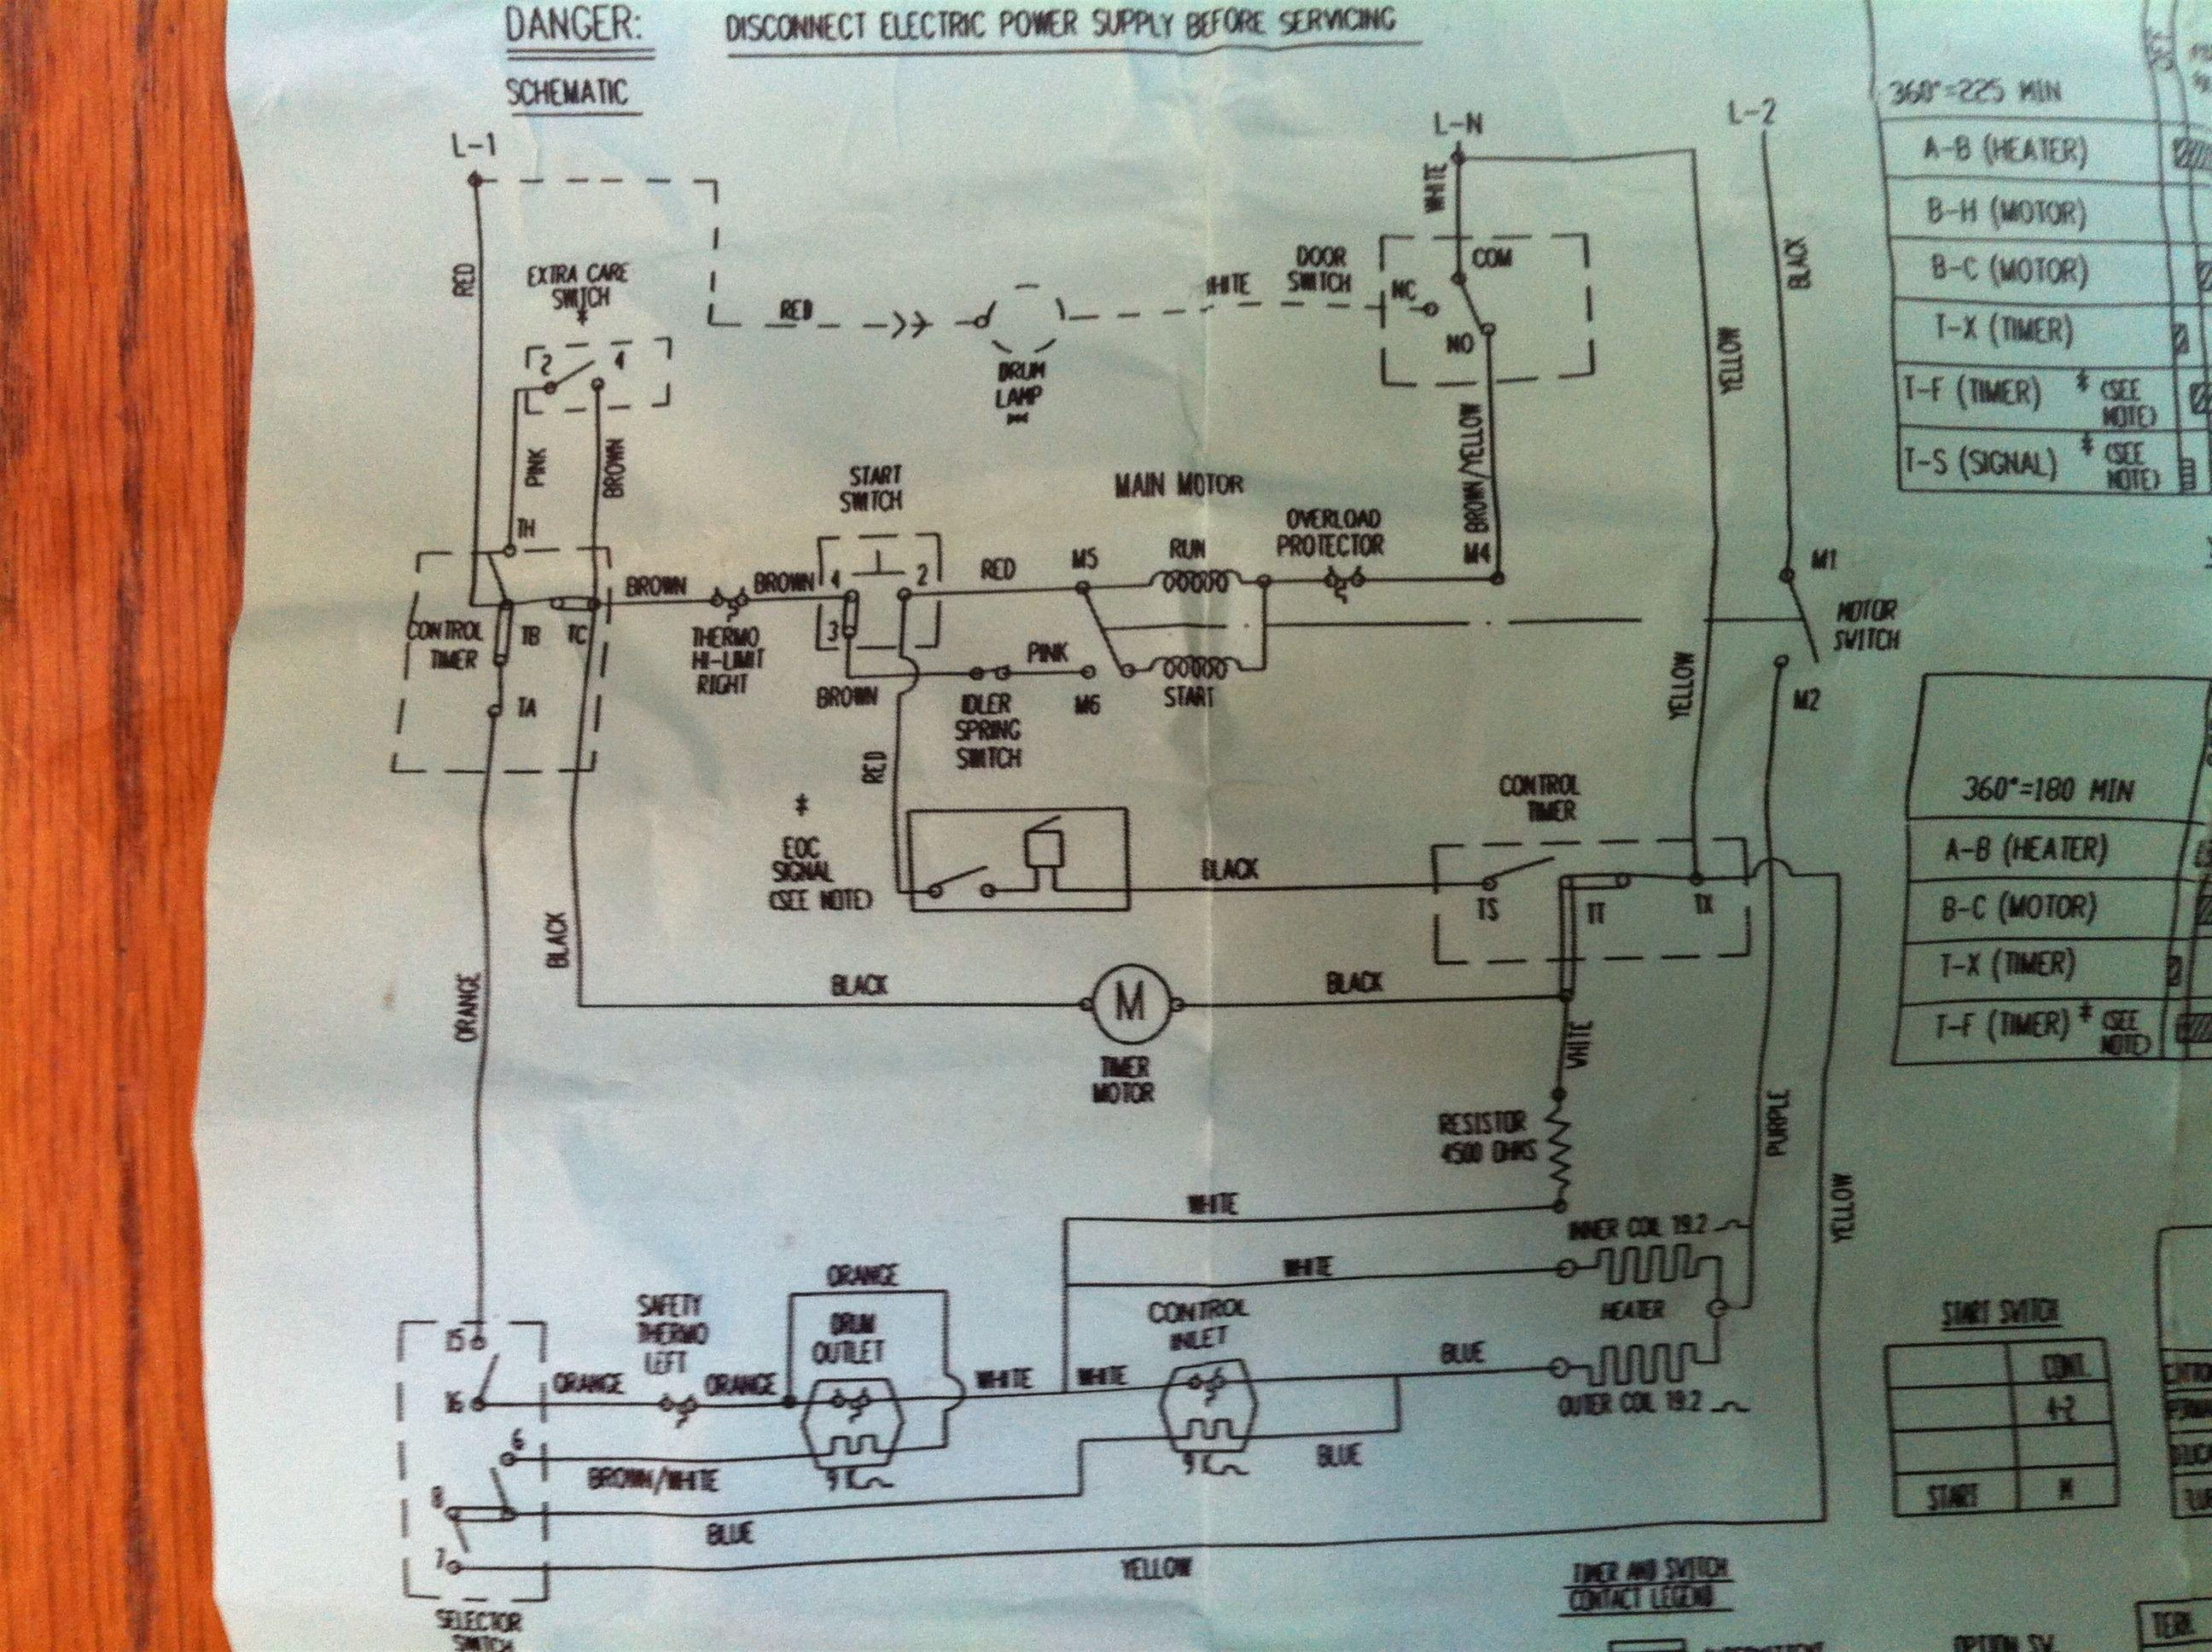 ge dryer timer wiring diagram Download-ge dryer start switch wiring diagram fresh ge dryer wiring diagram of ge dryer start switch wiring diagram 1 5-c